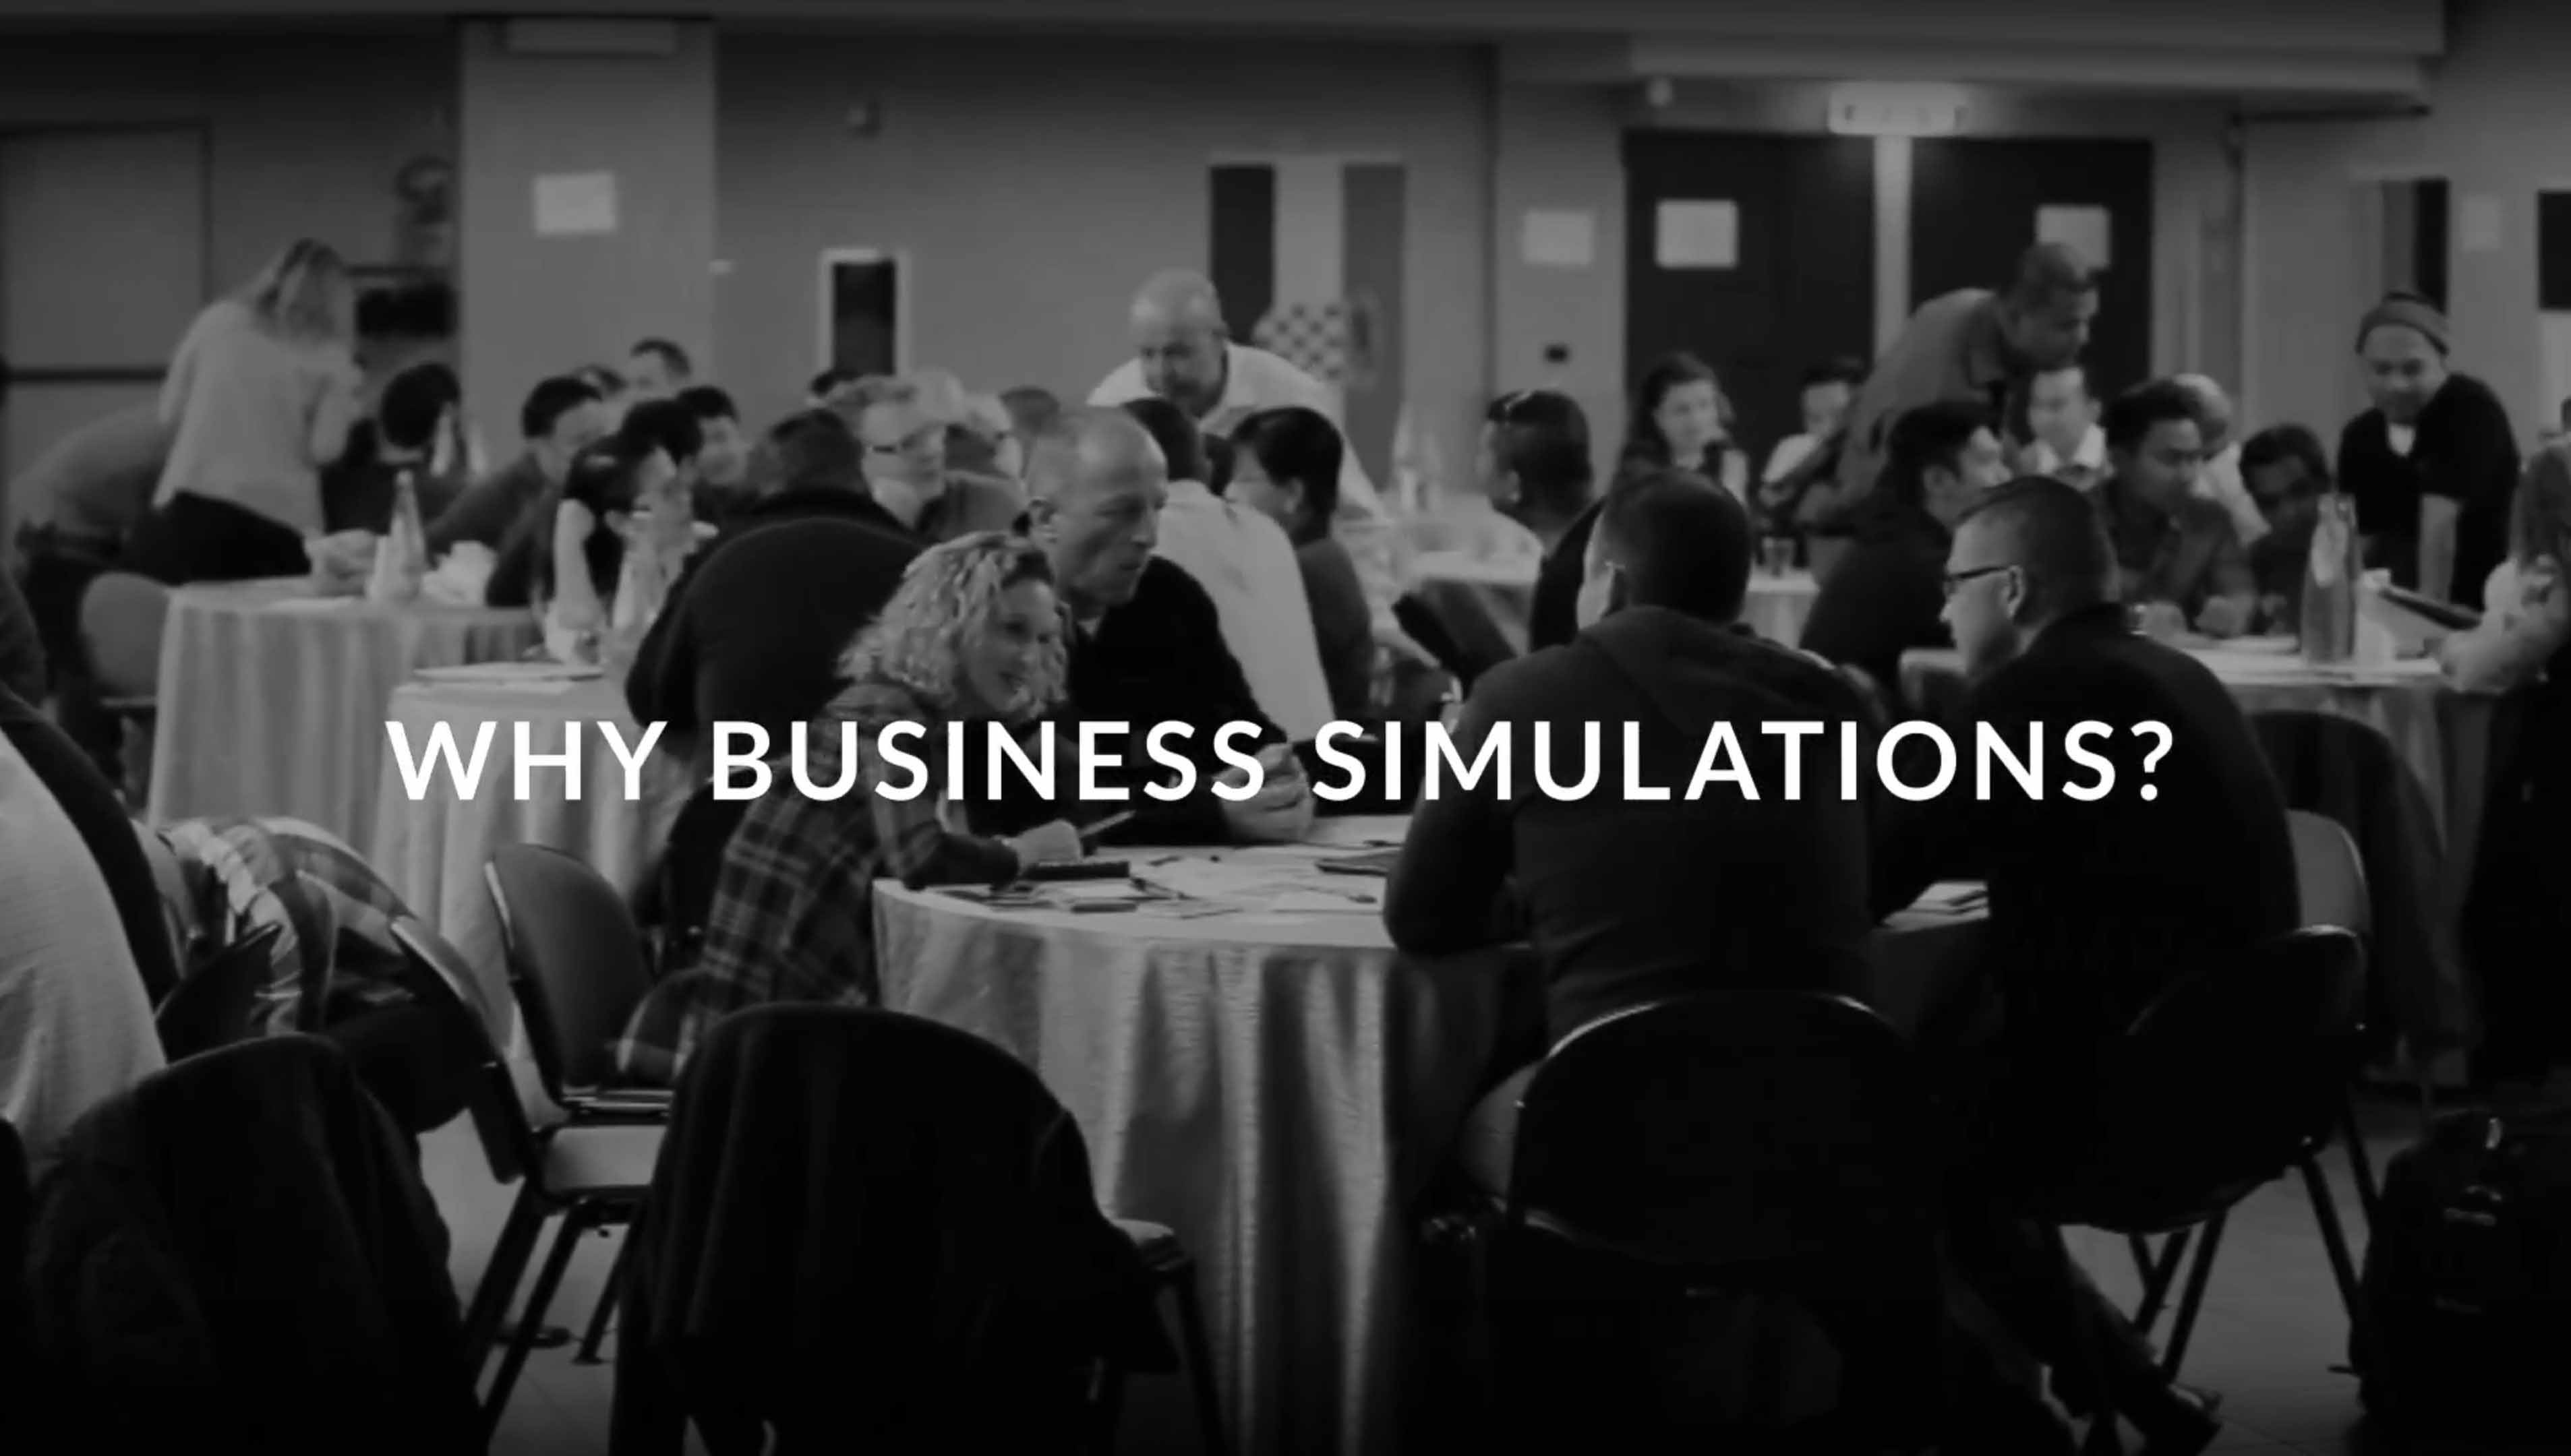 Why business simulations?